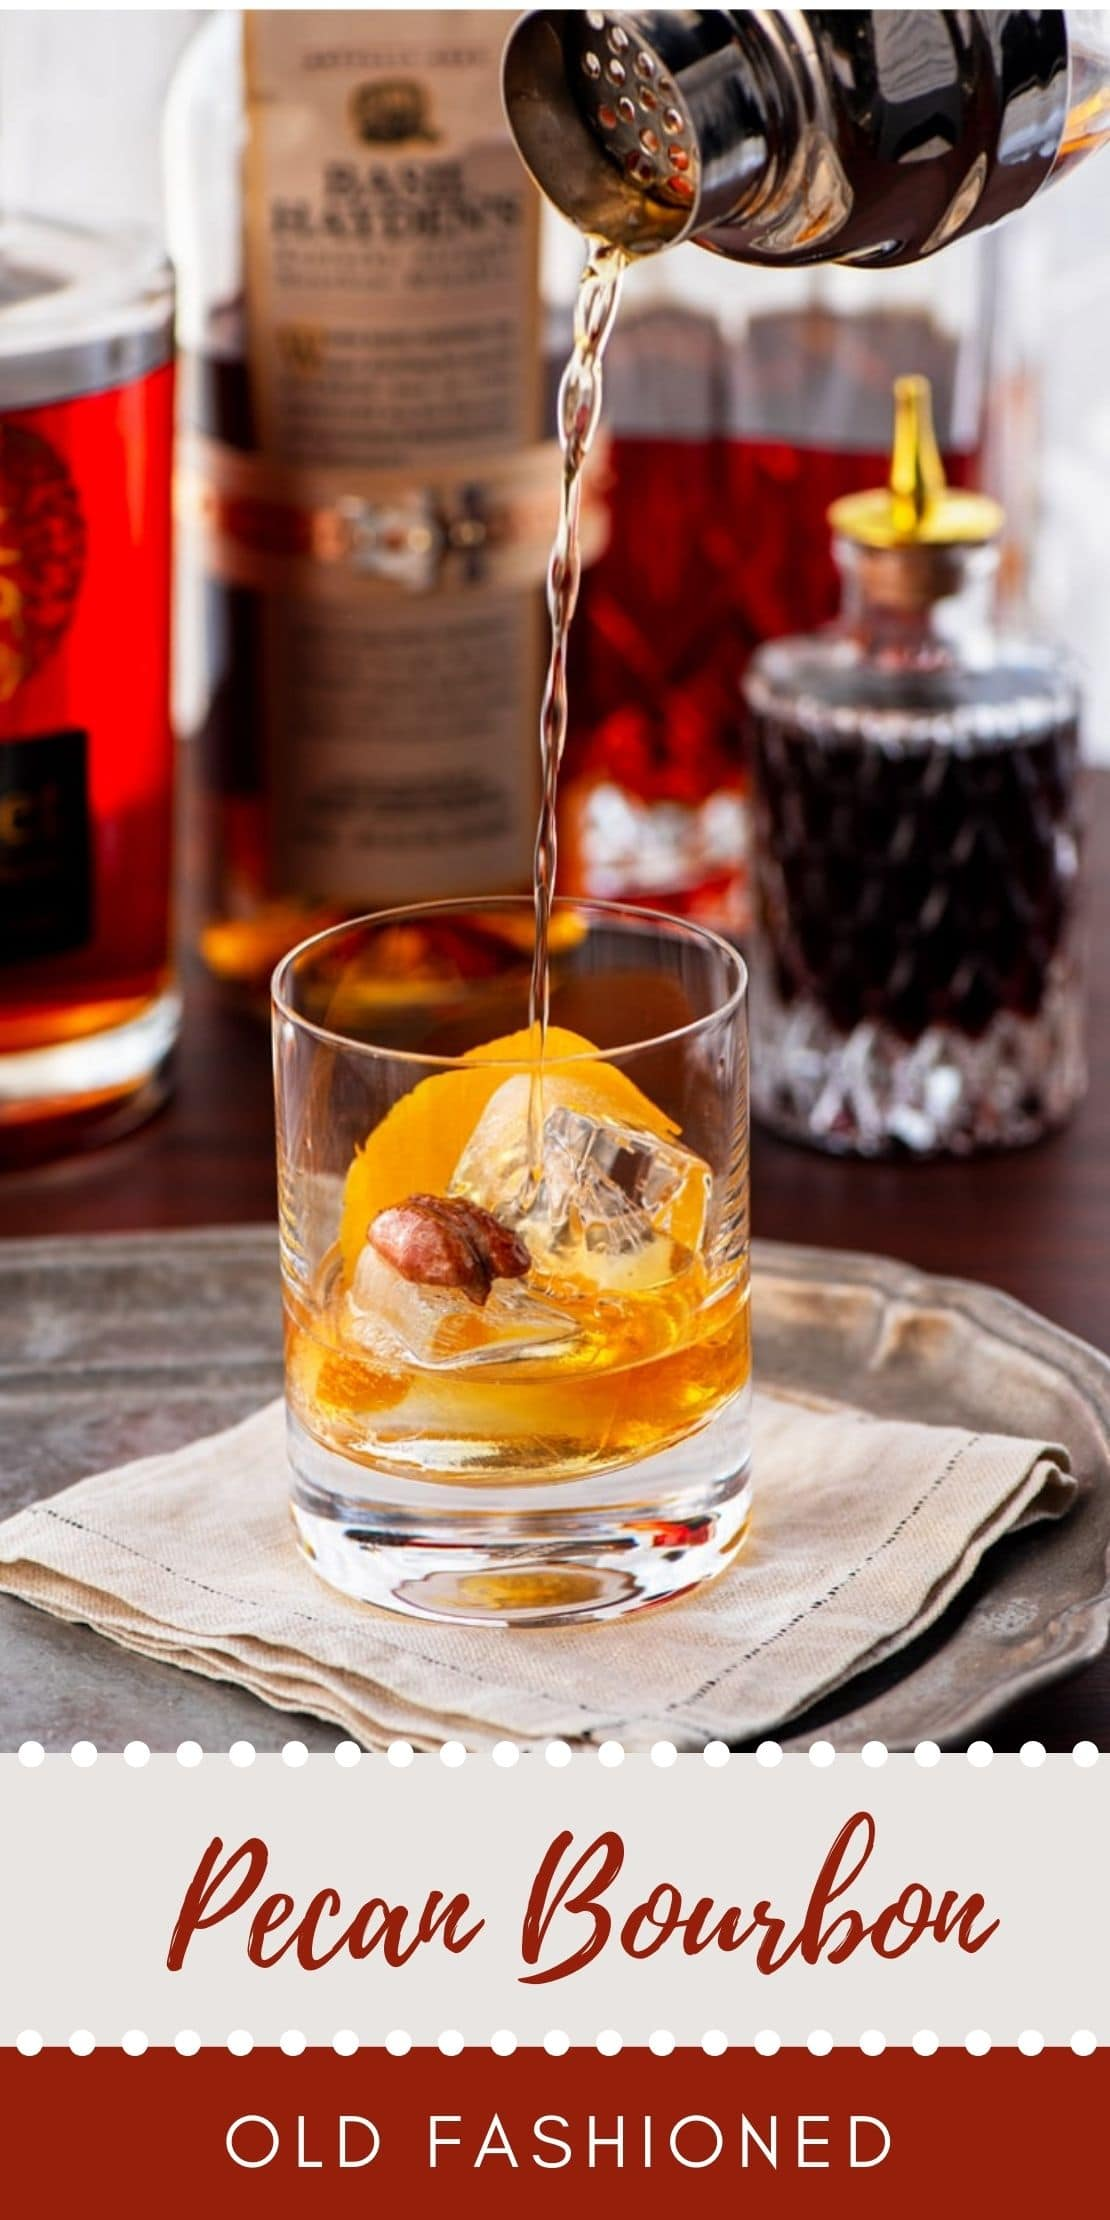 Pecan Old Fashioned - Pecan Bourbon Old Fashioned Cocktail Recipe